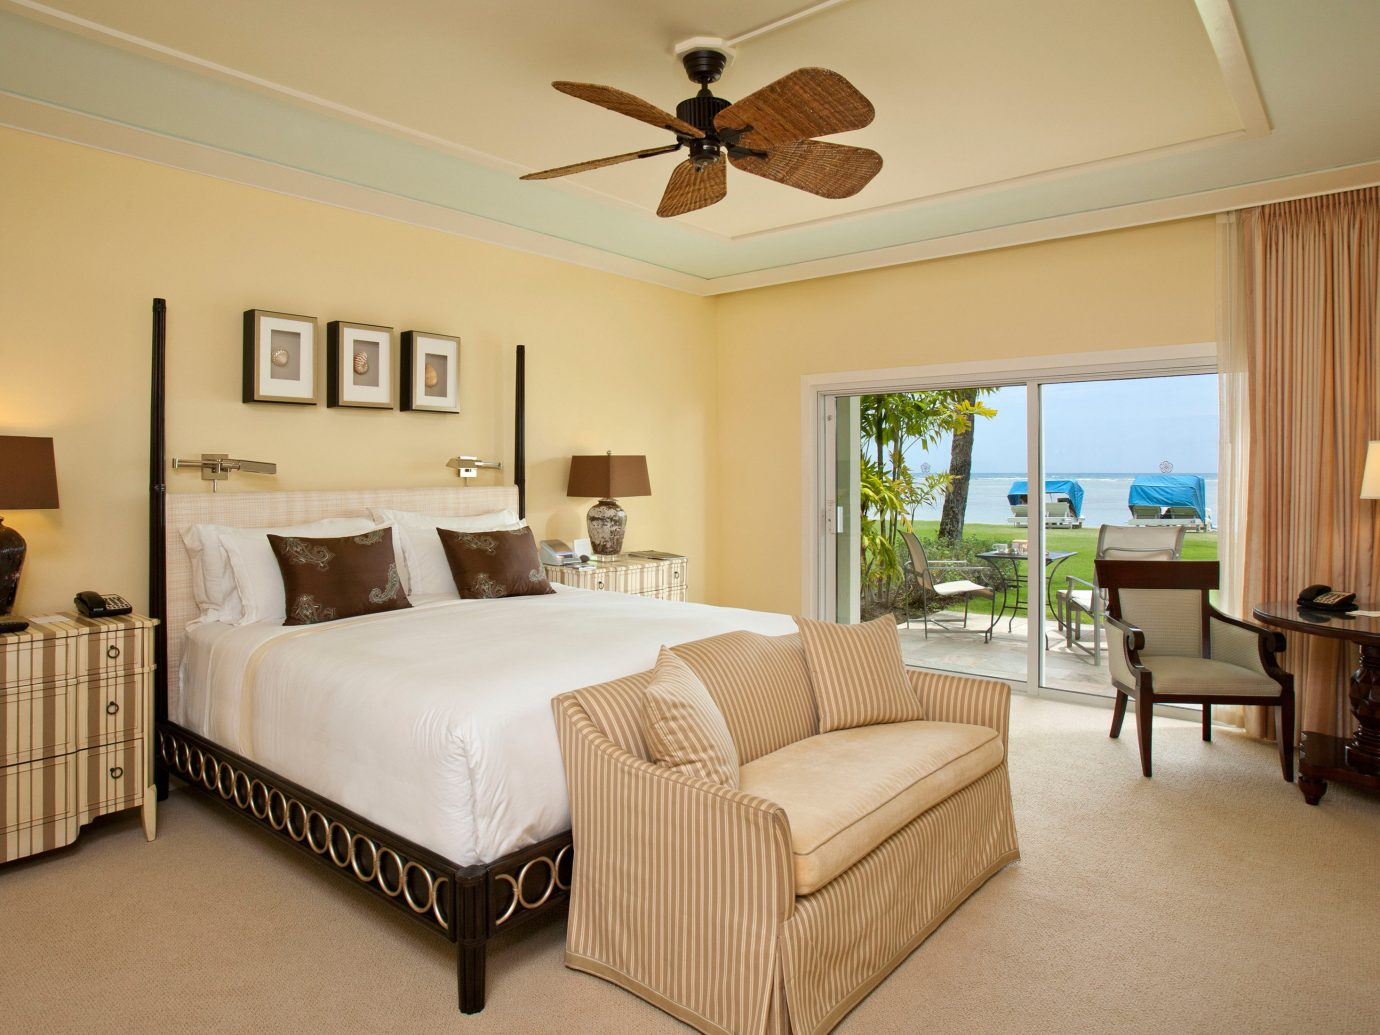 Beach Beachfront Bedroom Boutique Hotels Family Hawaii Honolulu Hotels Island Resort Romantic floor indoor wall room sofa ceiling Living bed property estate hotel furniture home real estate Suite cottage living room interior design Villa apartment decorated area